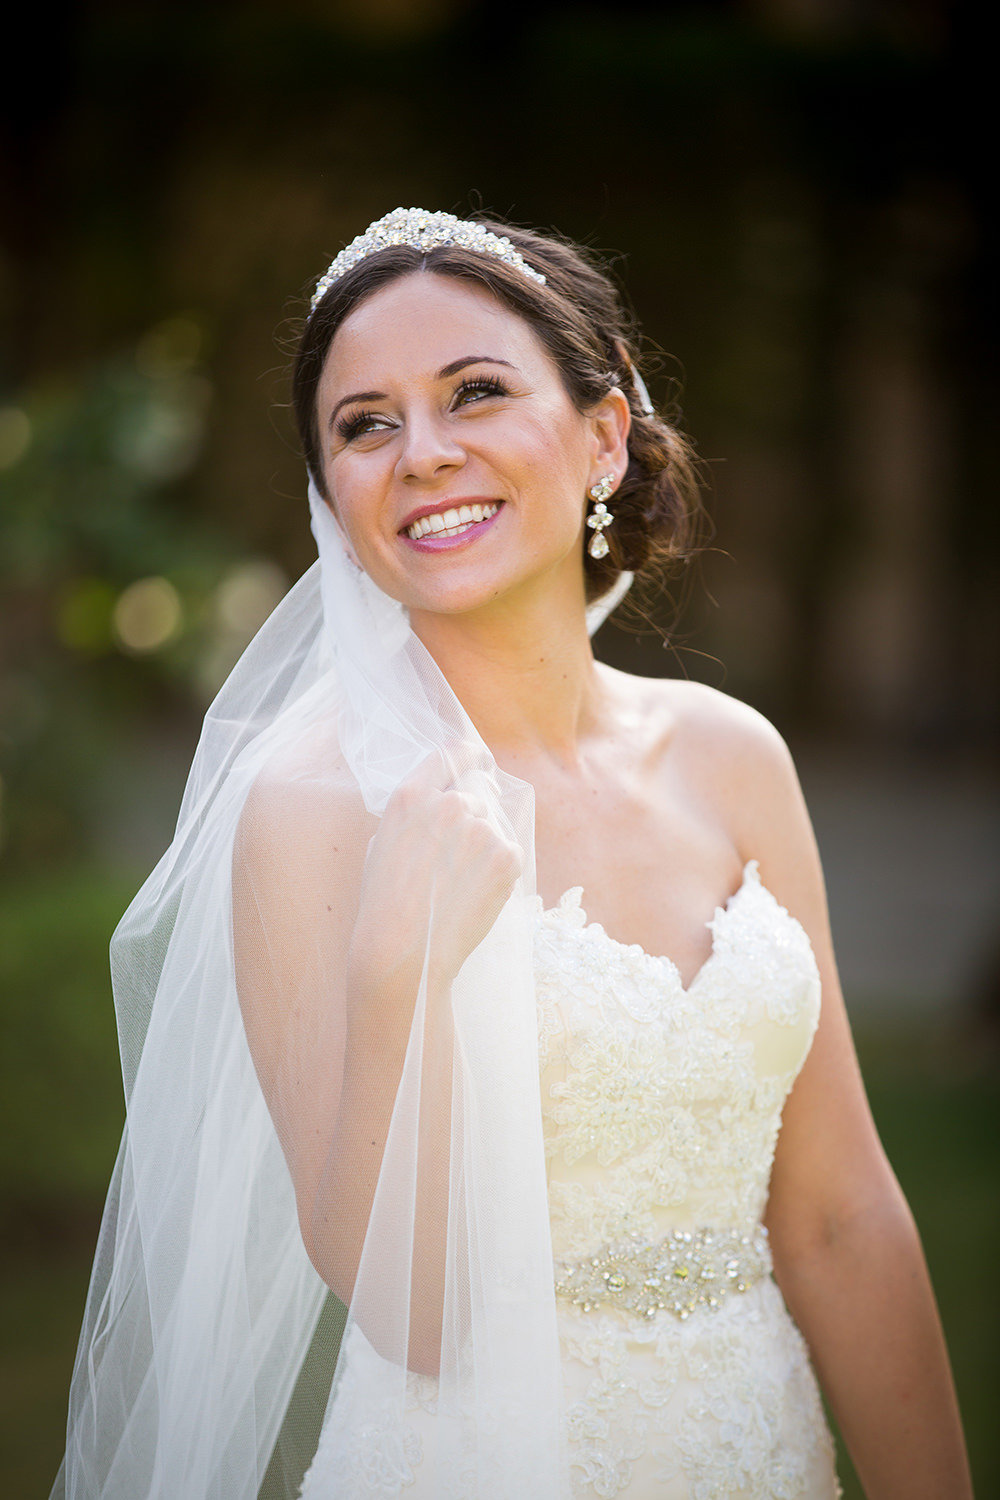 Candid and fun bridal portrait